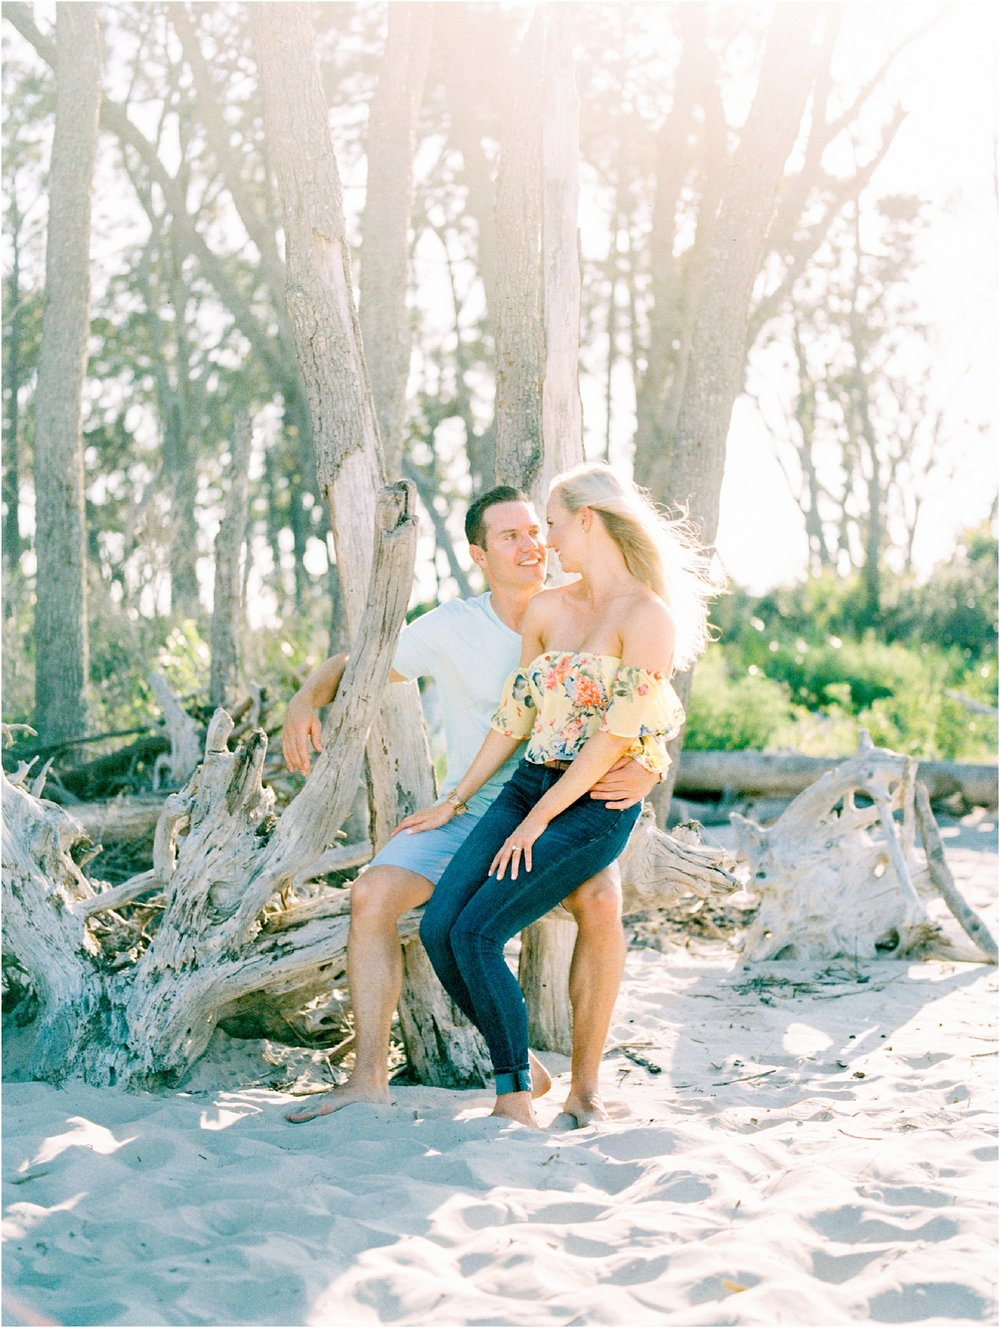 Lisa Silva Photography- Ponte Vedra Beach and Jacksonville, Florida Fine Art Film Wedding Photography- Engagement Shoot at Big Talbot Island_0004.jpg